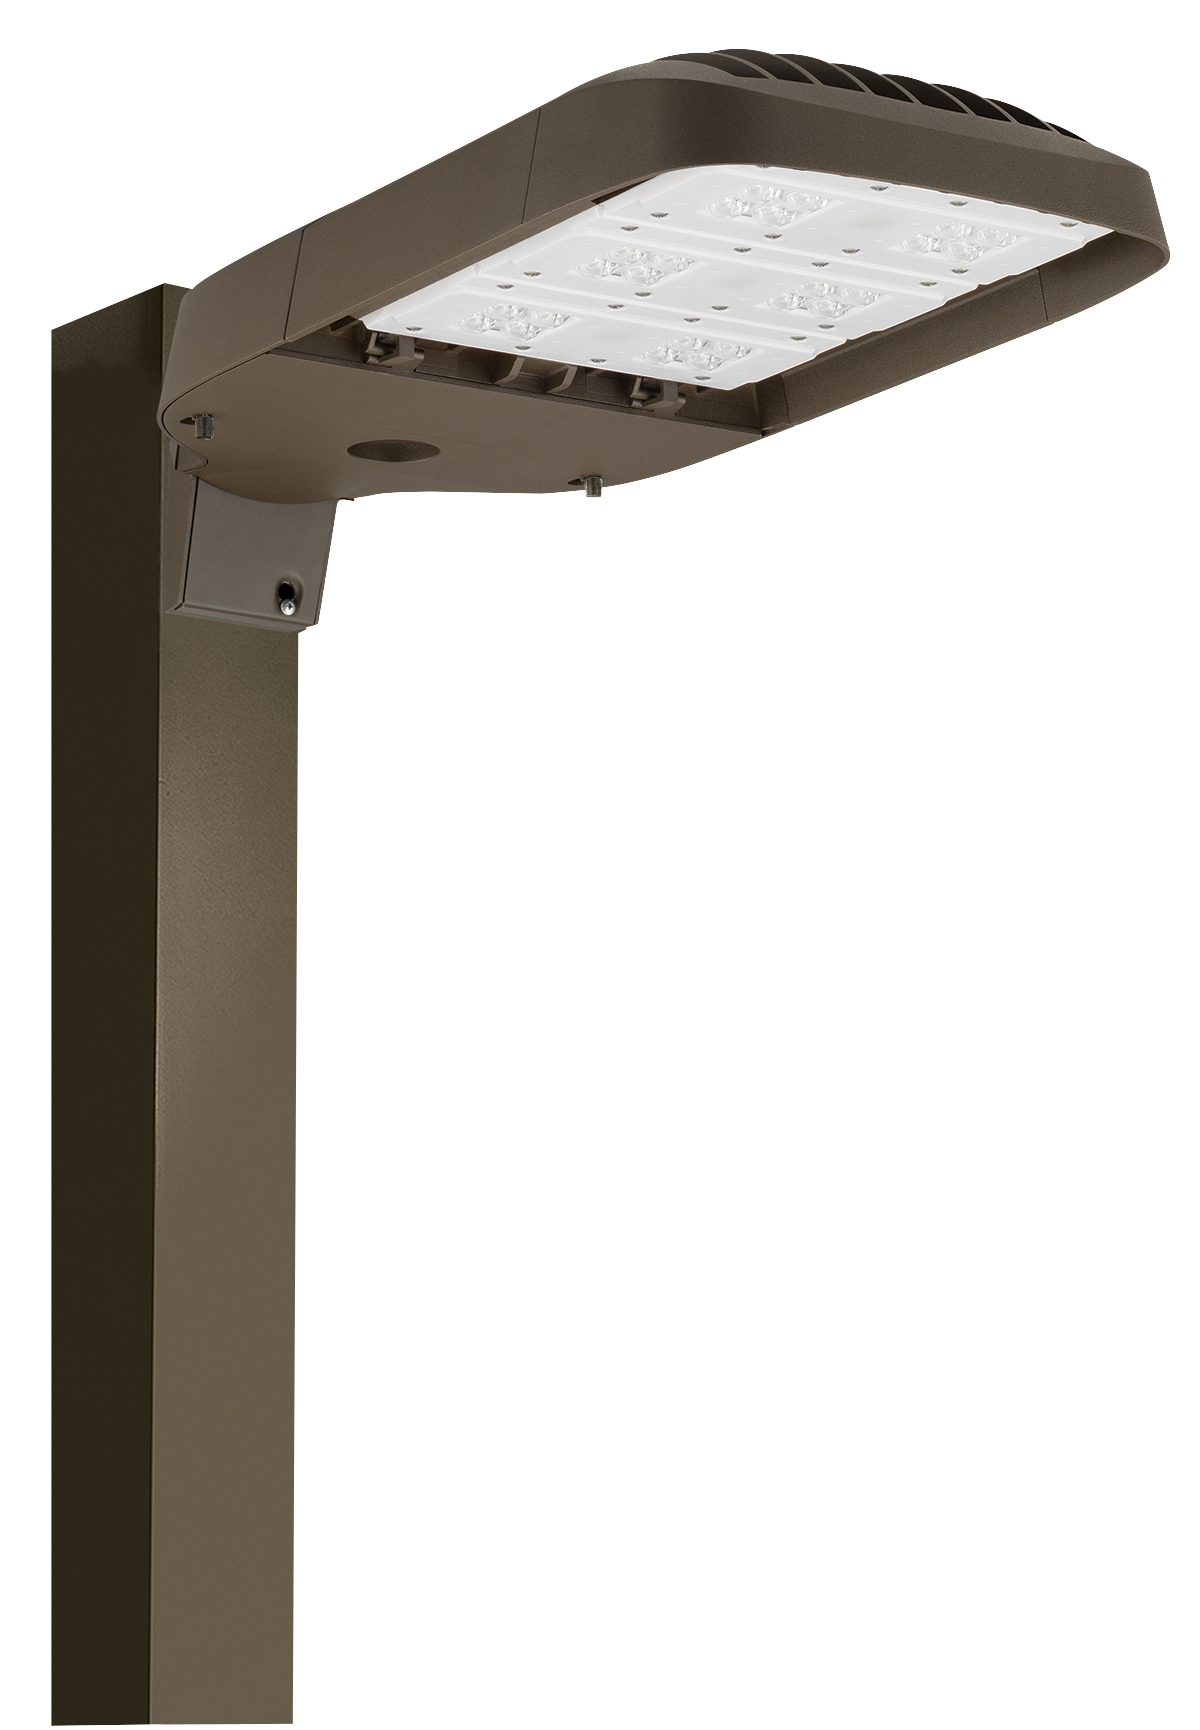 Hubbell Outdoor Lighting Launches New Asl Area Site